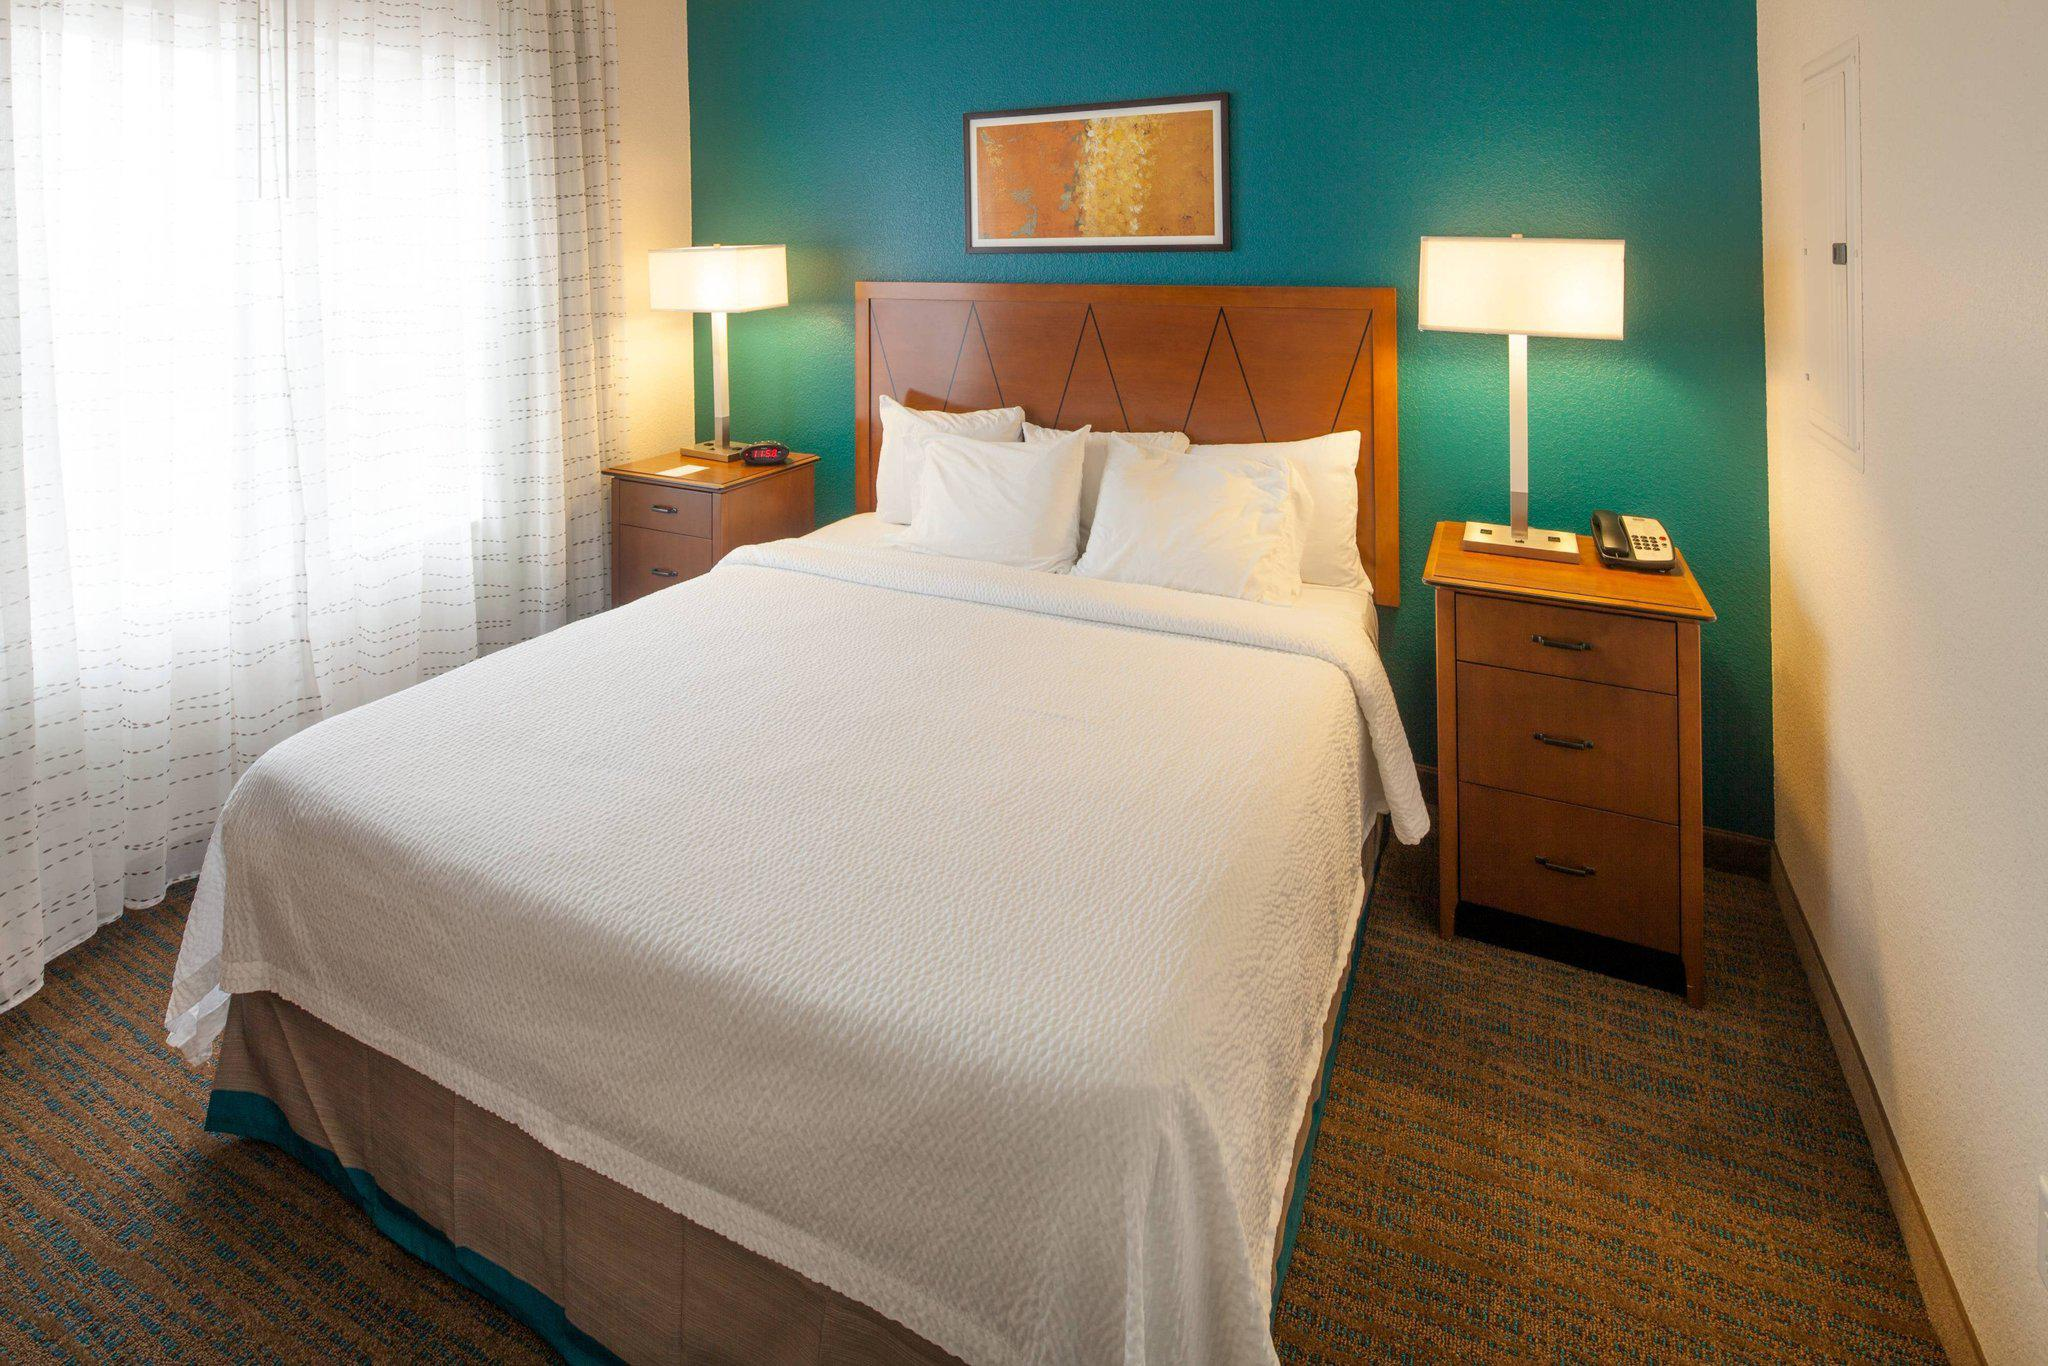 Residence Inn by Marriott Wichita East at Plazzio